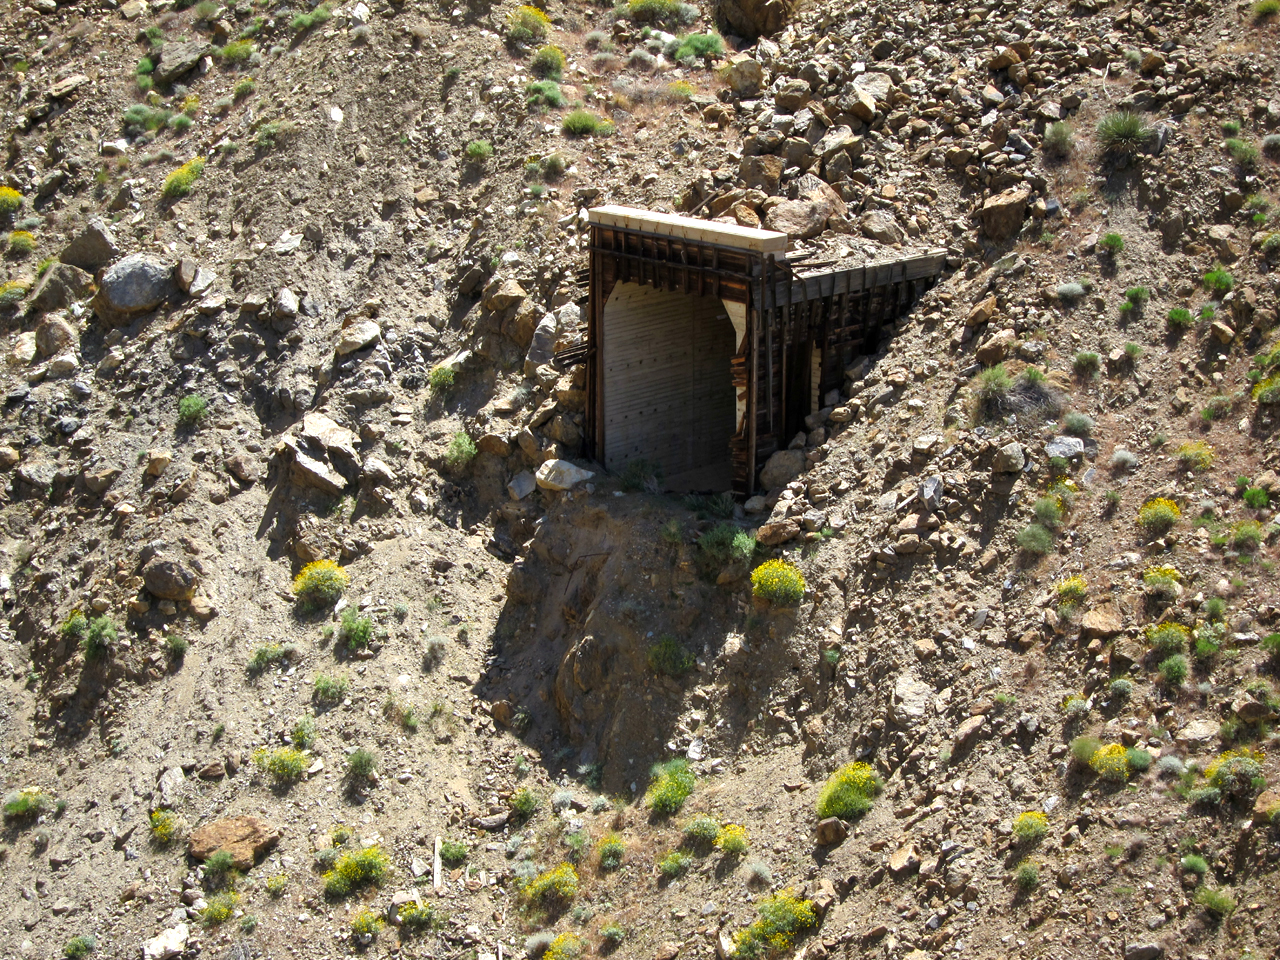 The collapsed tunnel that initiated the building of the Goat Canyon Trestle